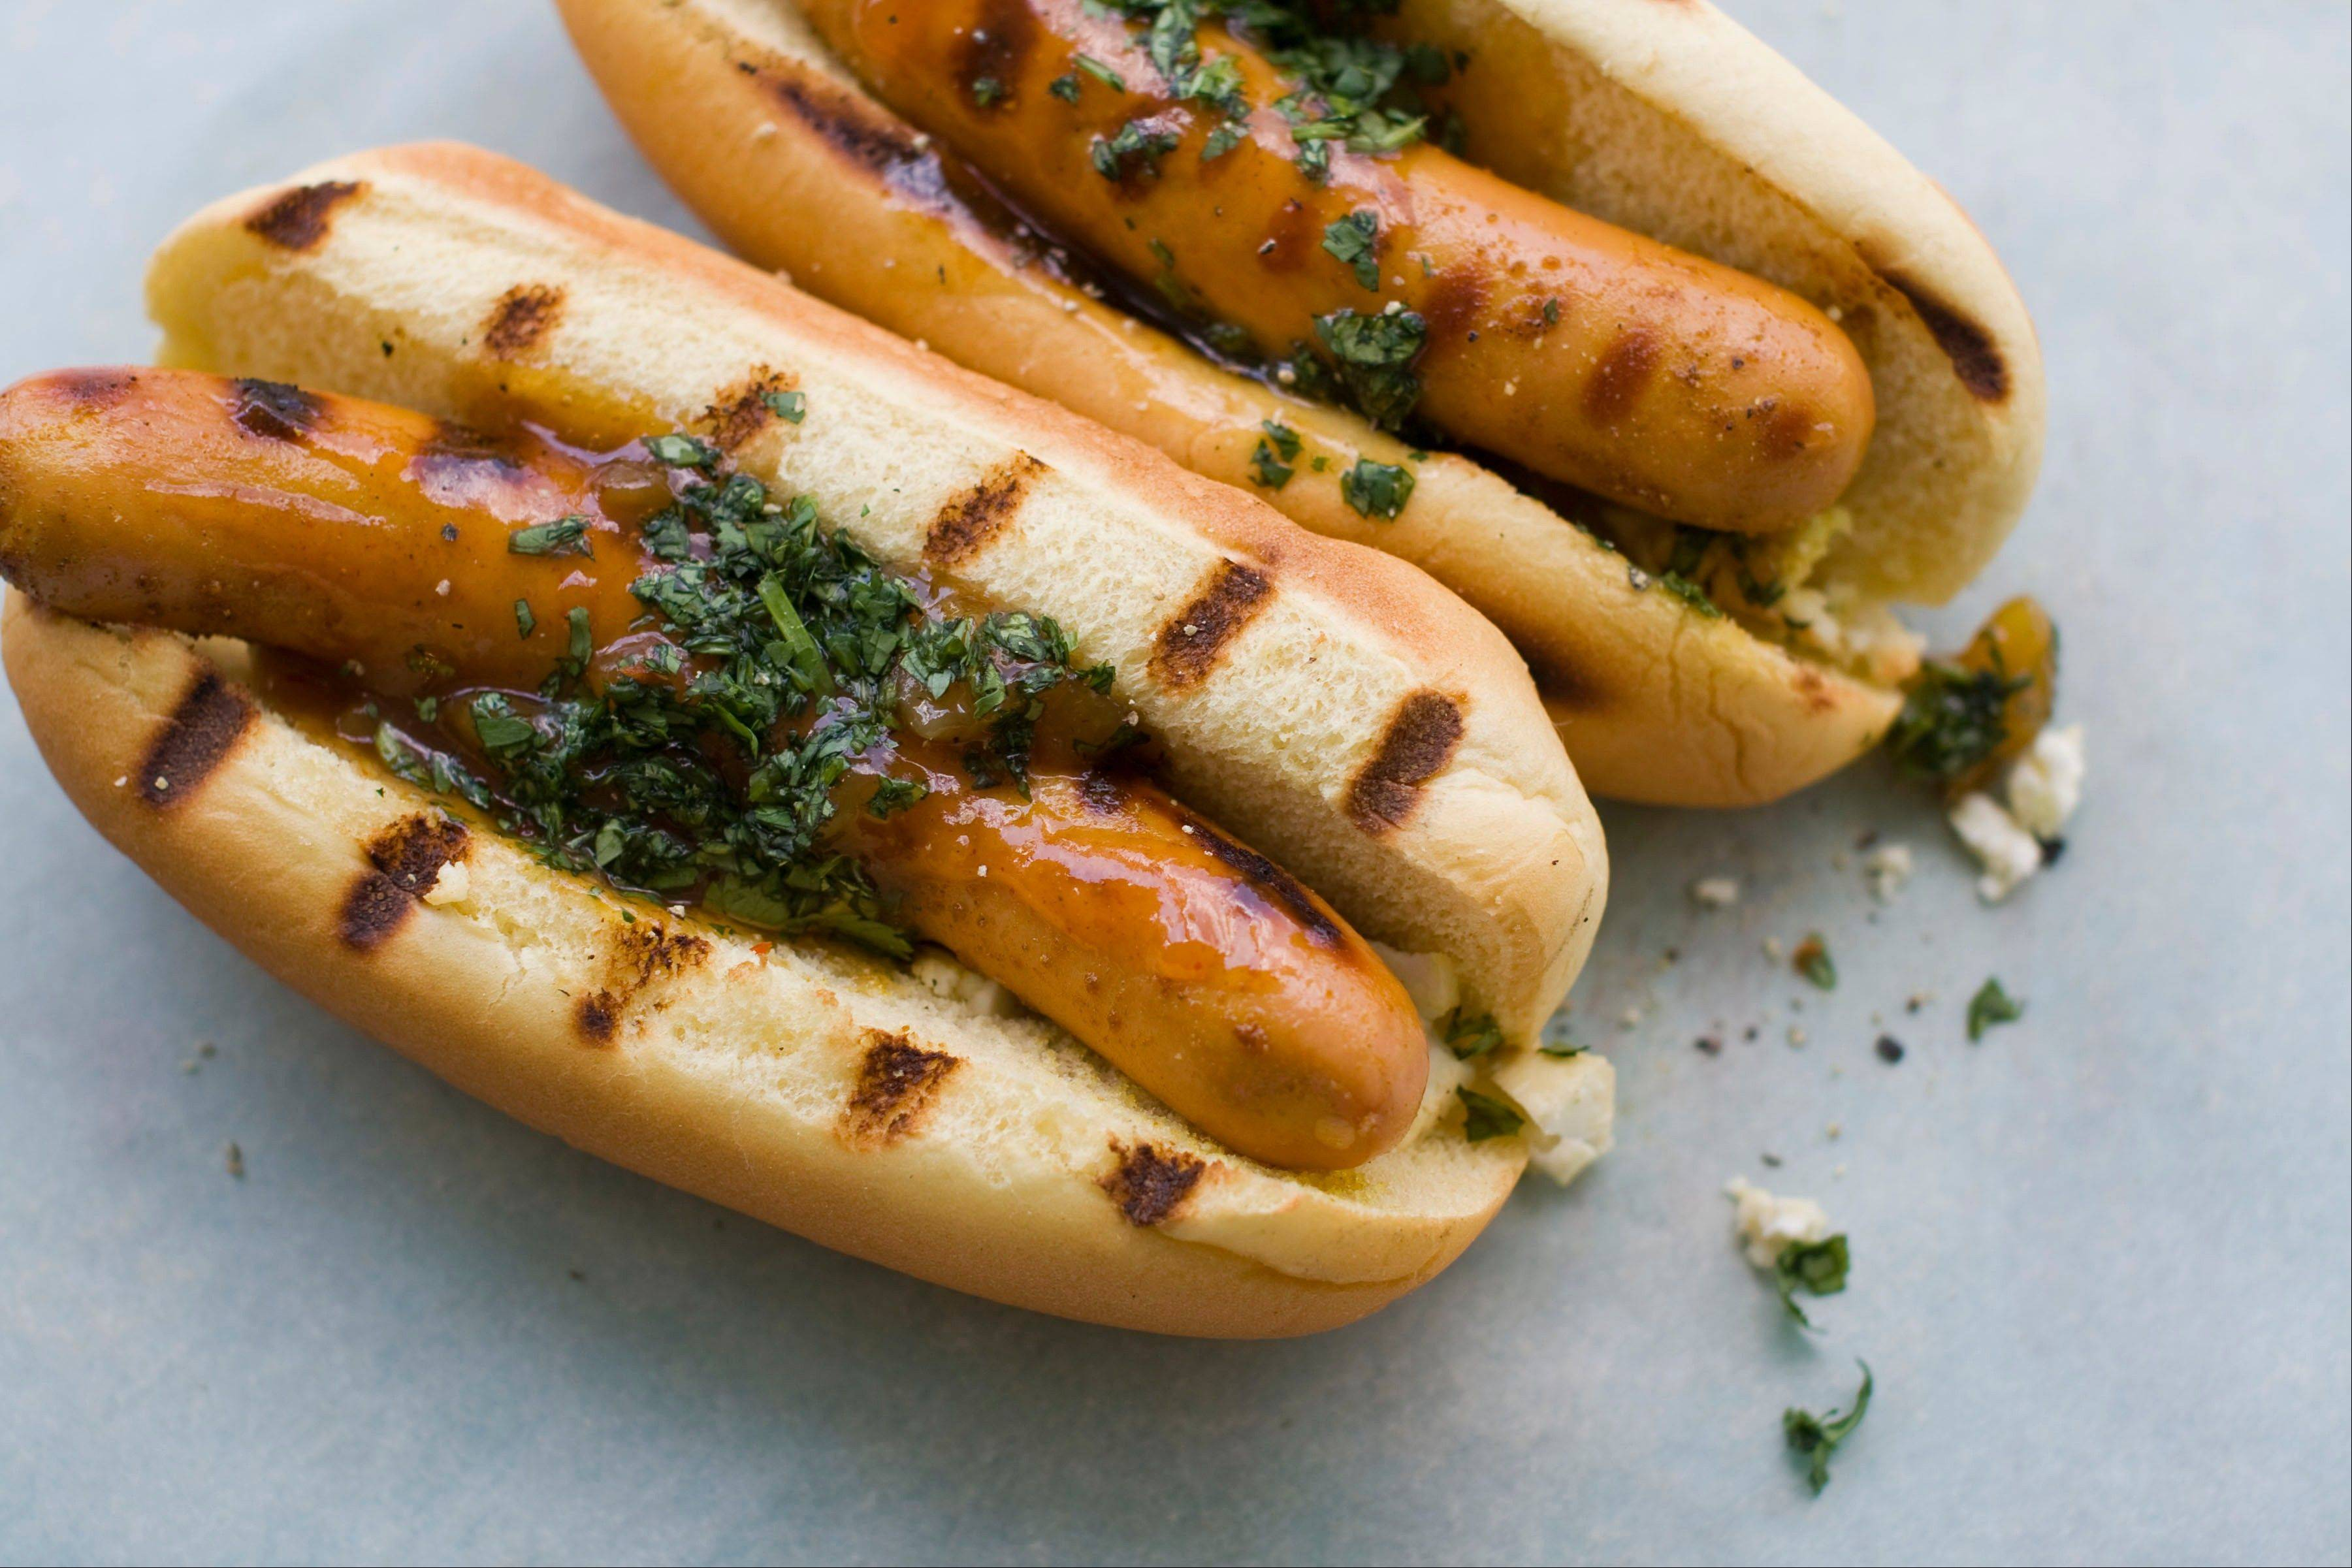 Curry powder and paneer turn this frankfurter into an Indian-inspired hot dog.